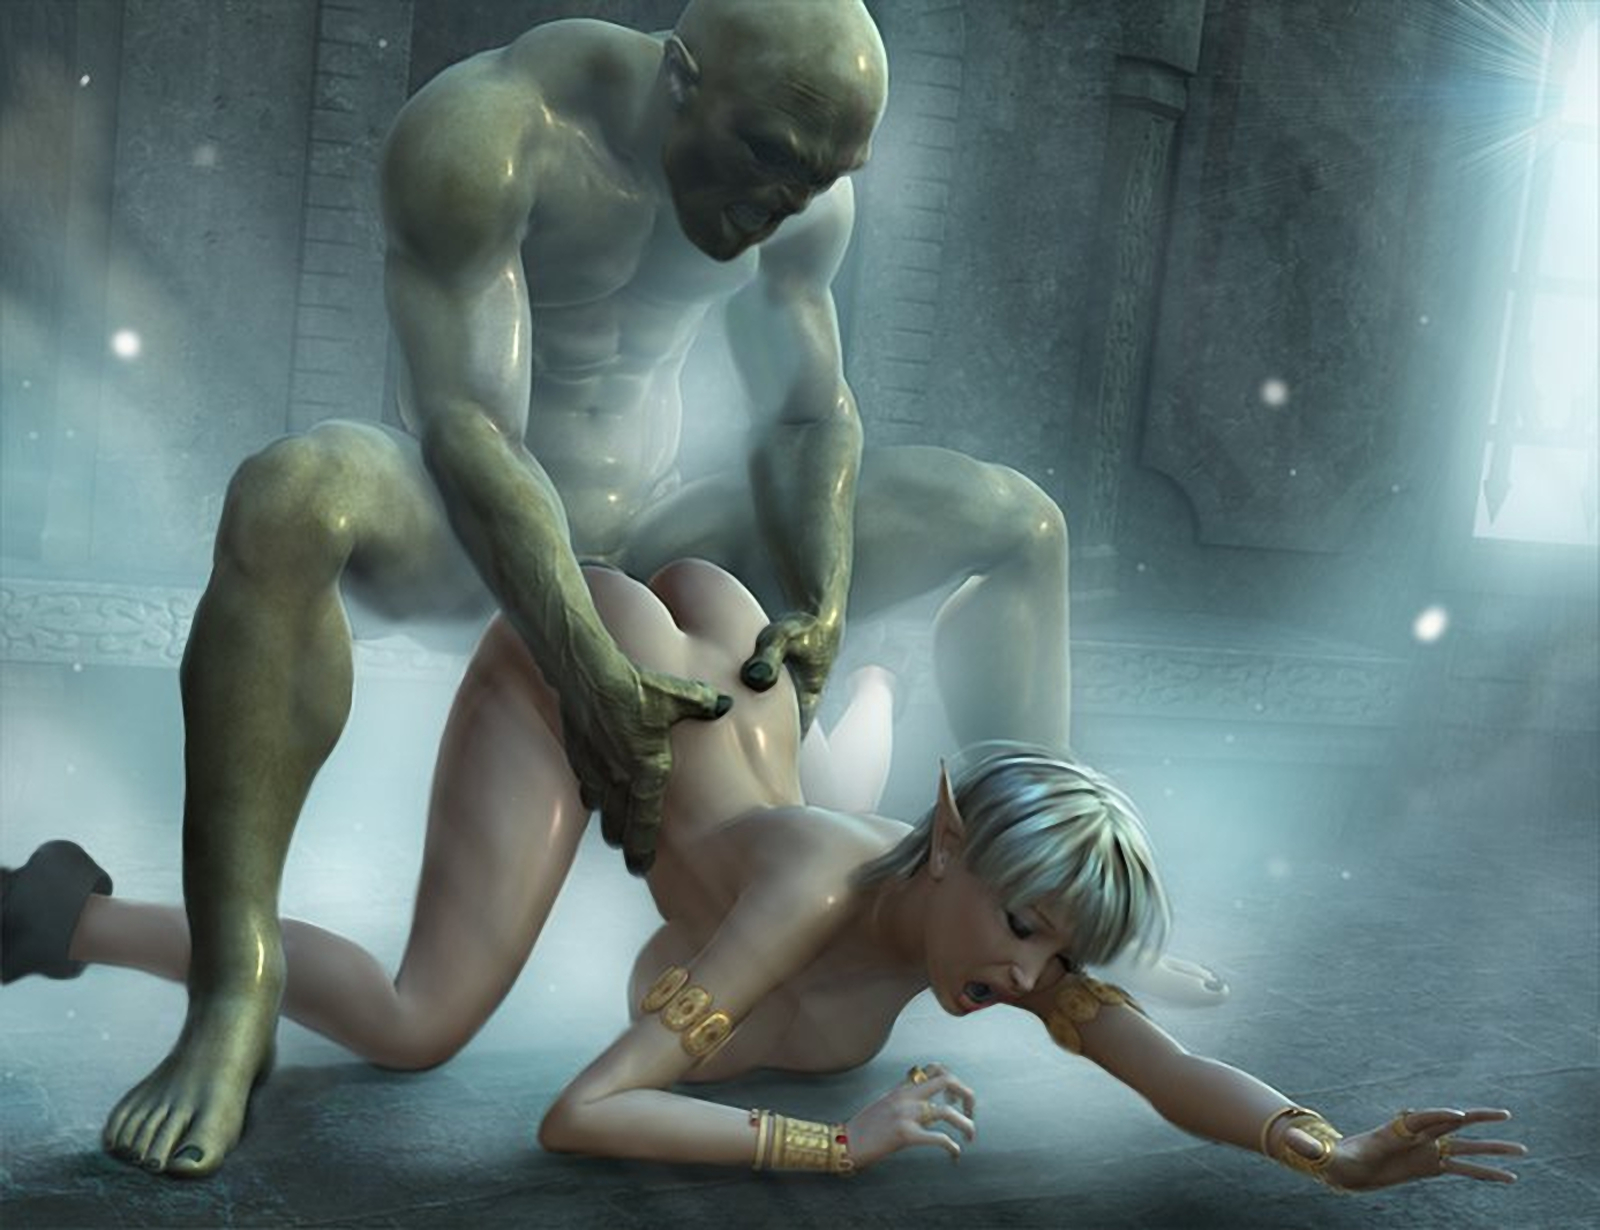 Fantasy 3d monster sex nude pictures